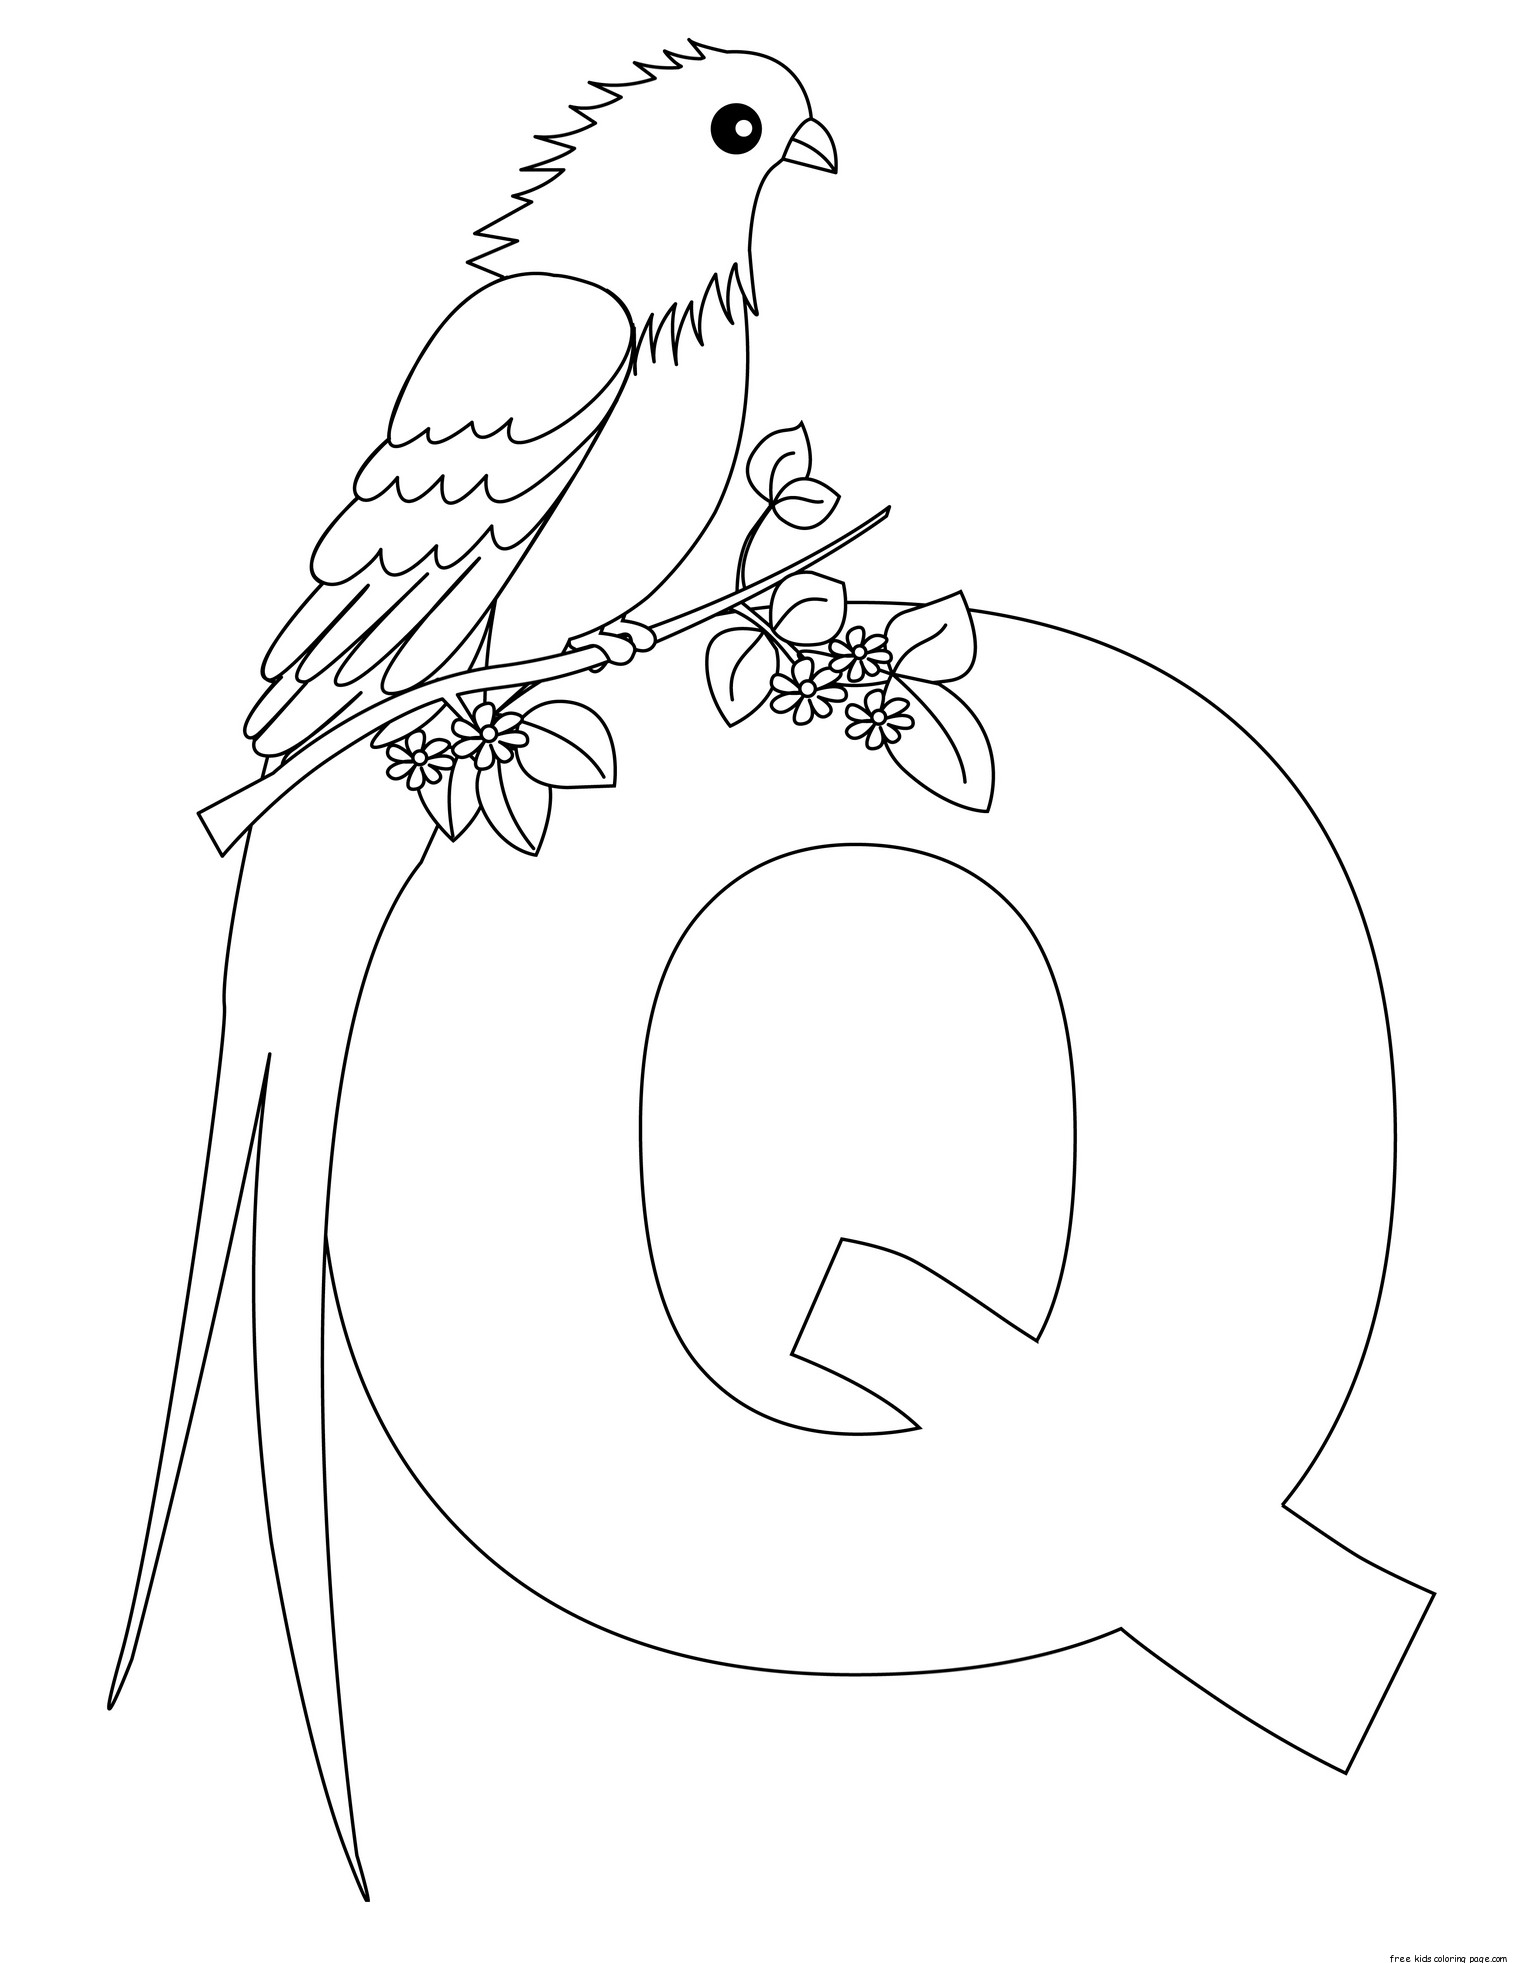 Coloring Pages Of Wetland Animals : Printable alphabet letters for preschoolers letter qfree